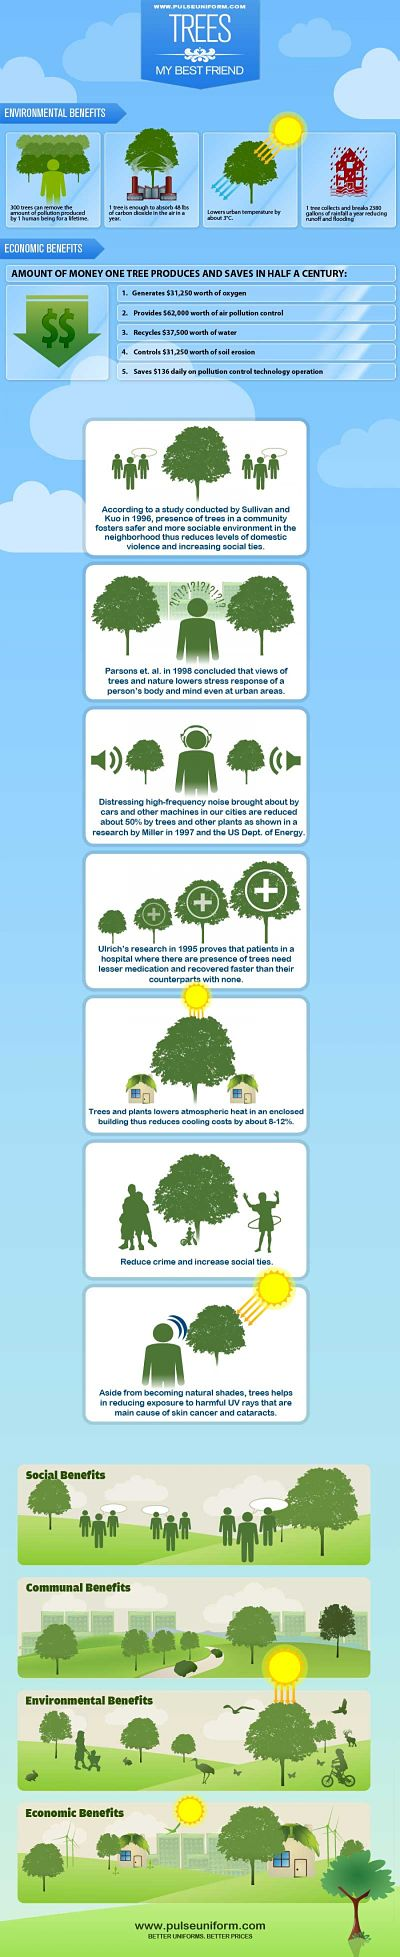 green energy living trees infographic